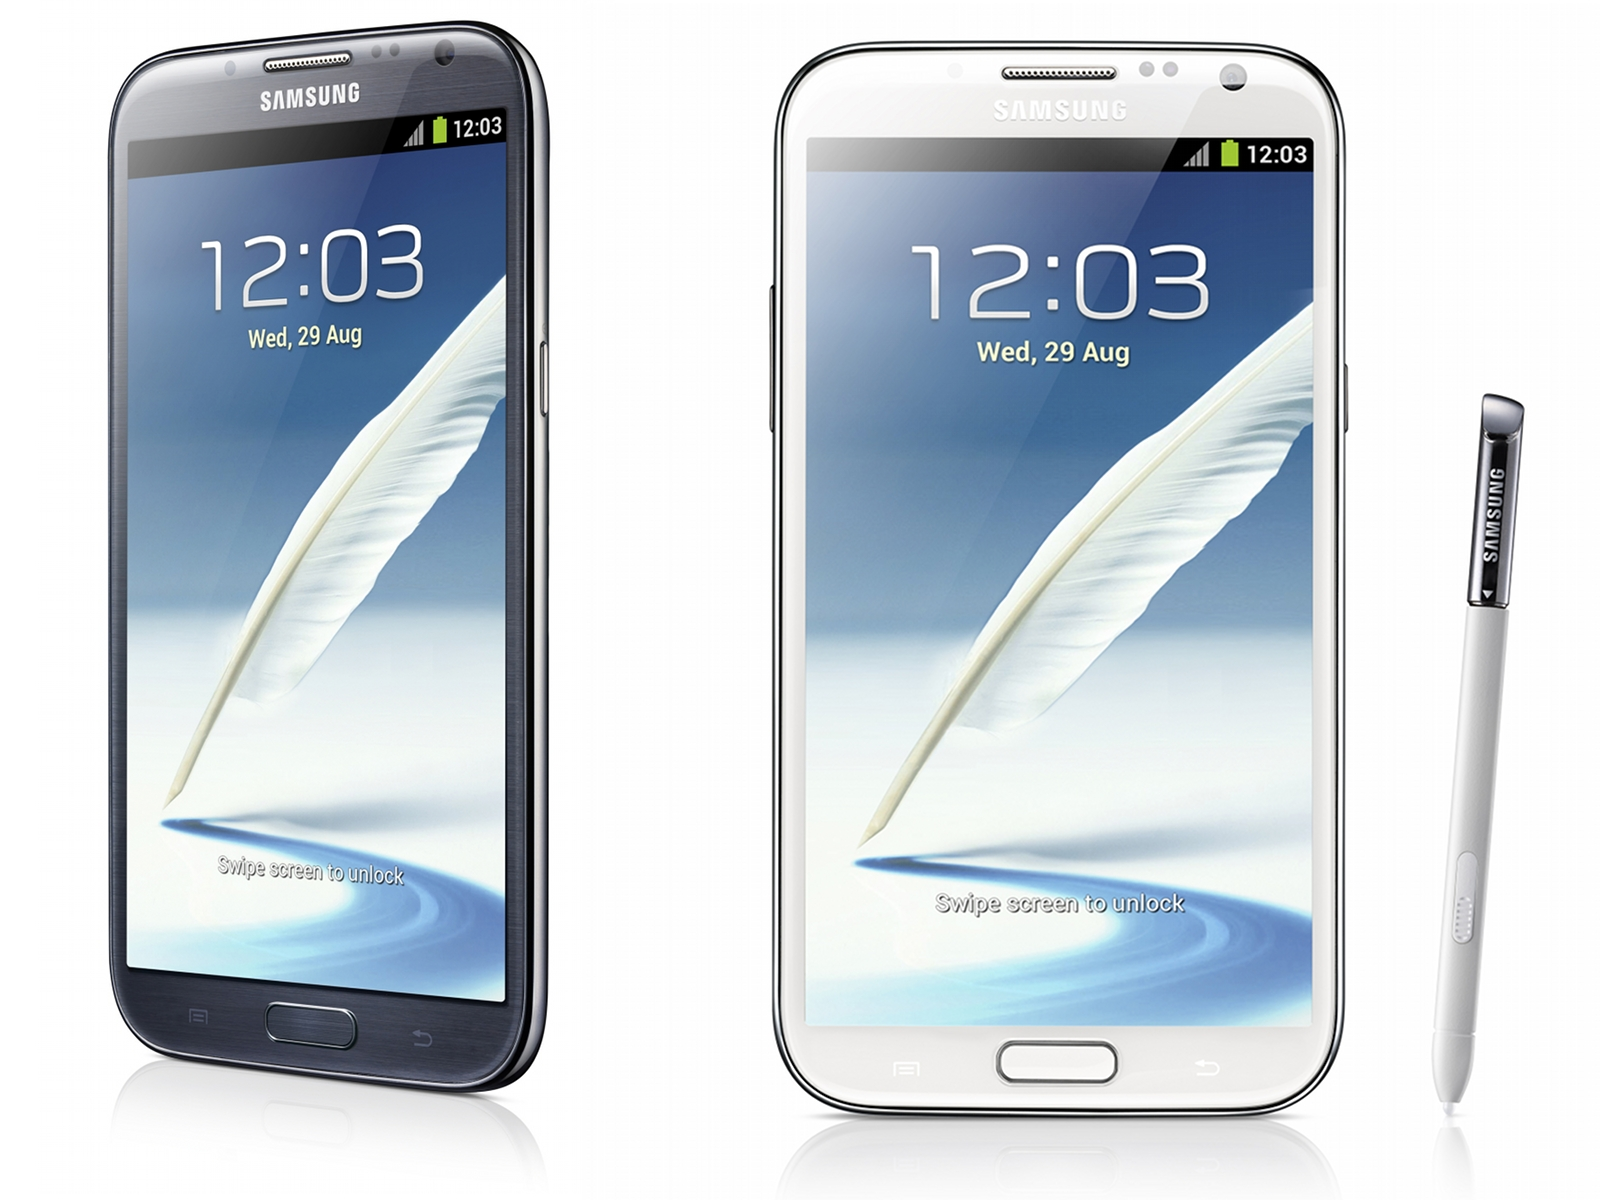 Samsung Galaxy Note II Revealed at IFA 2012